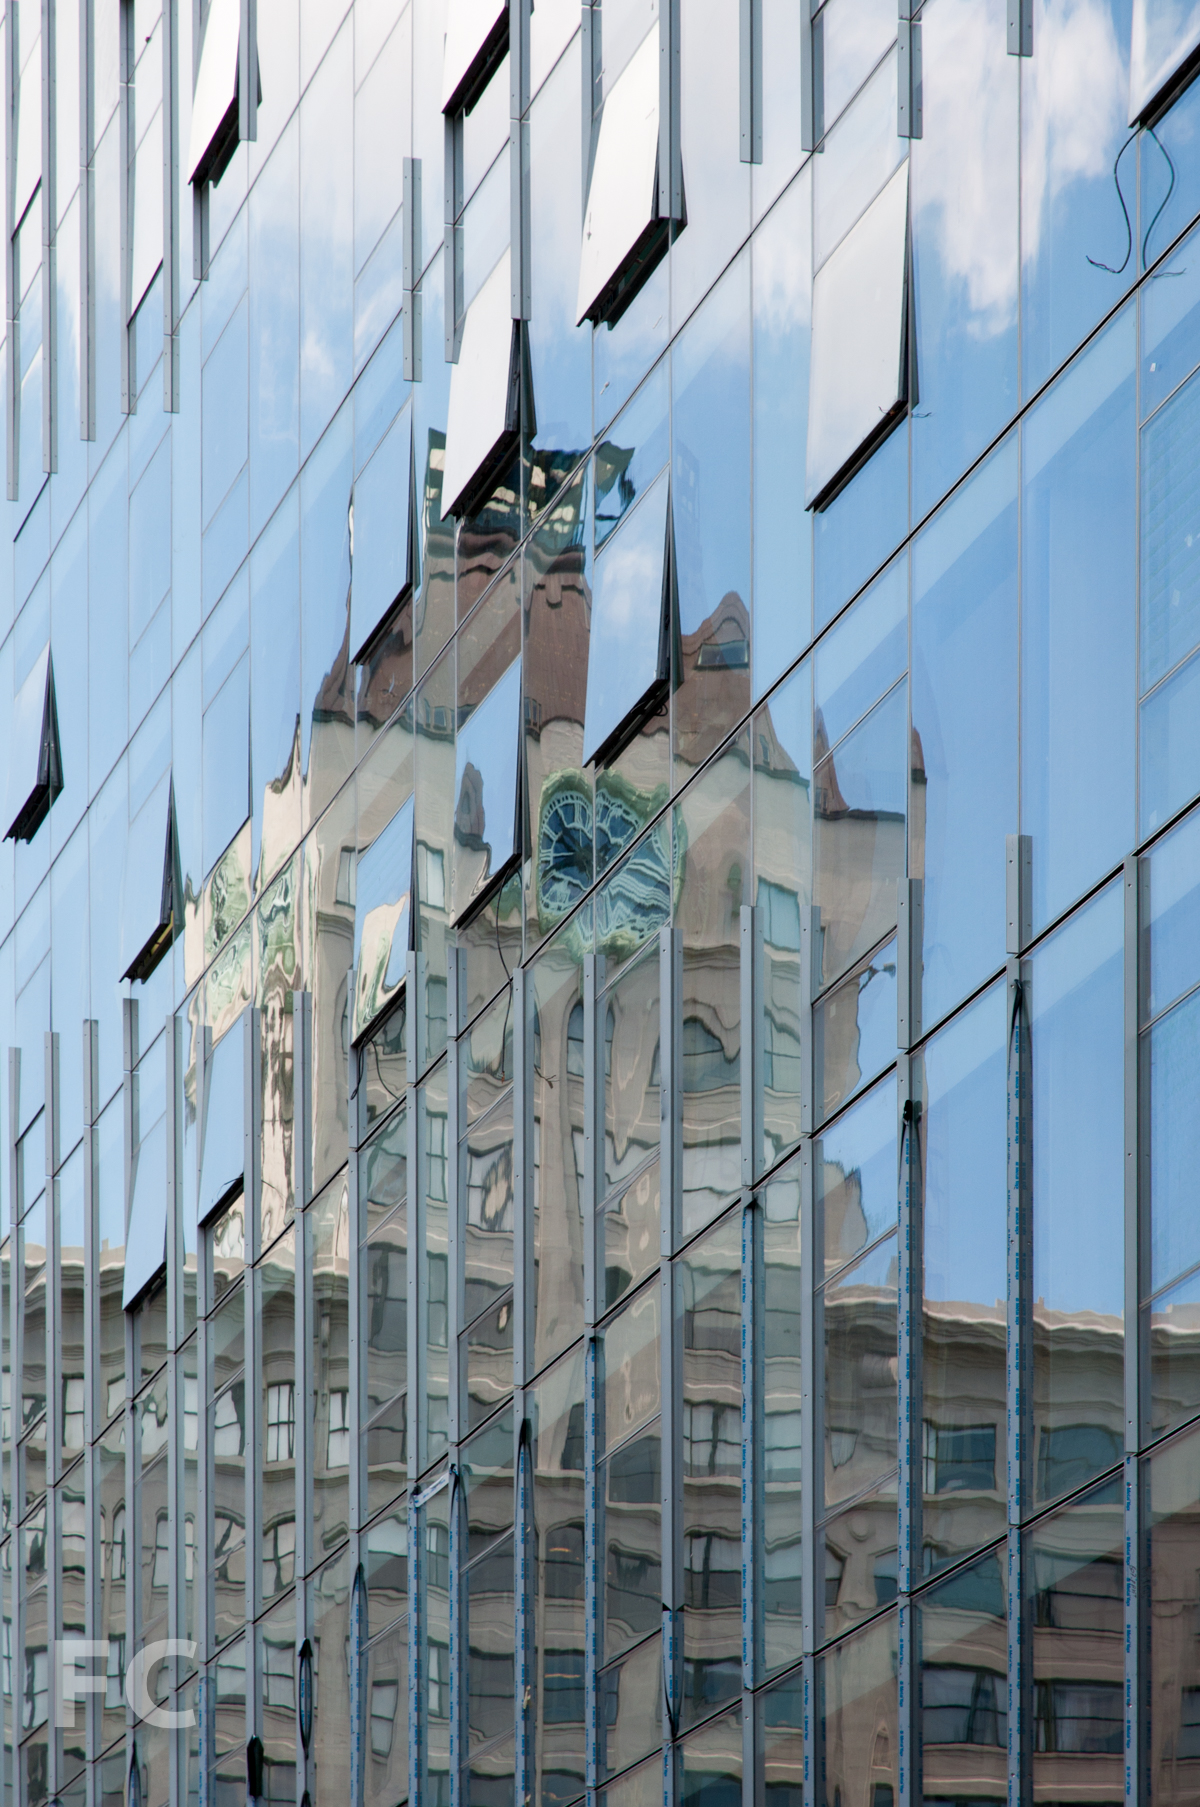 Reflection of the Clock Tower building in the curtain wall.